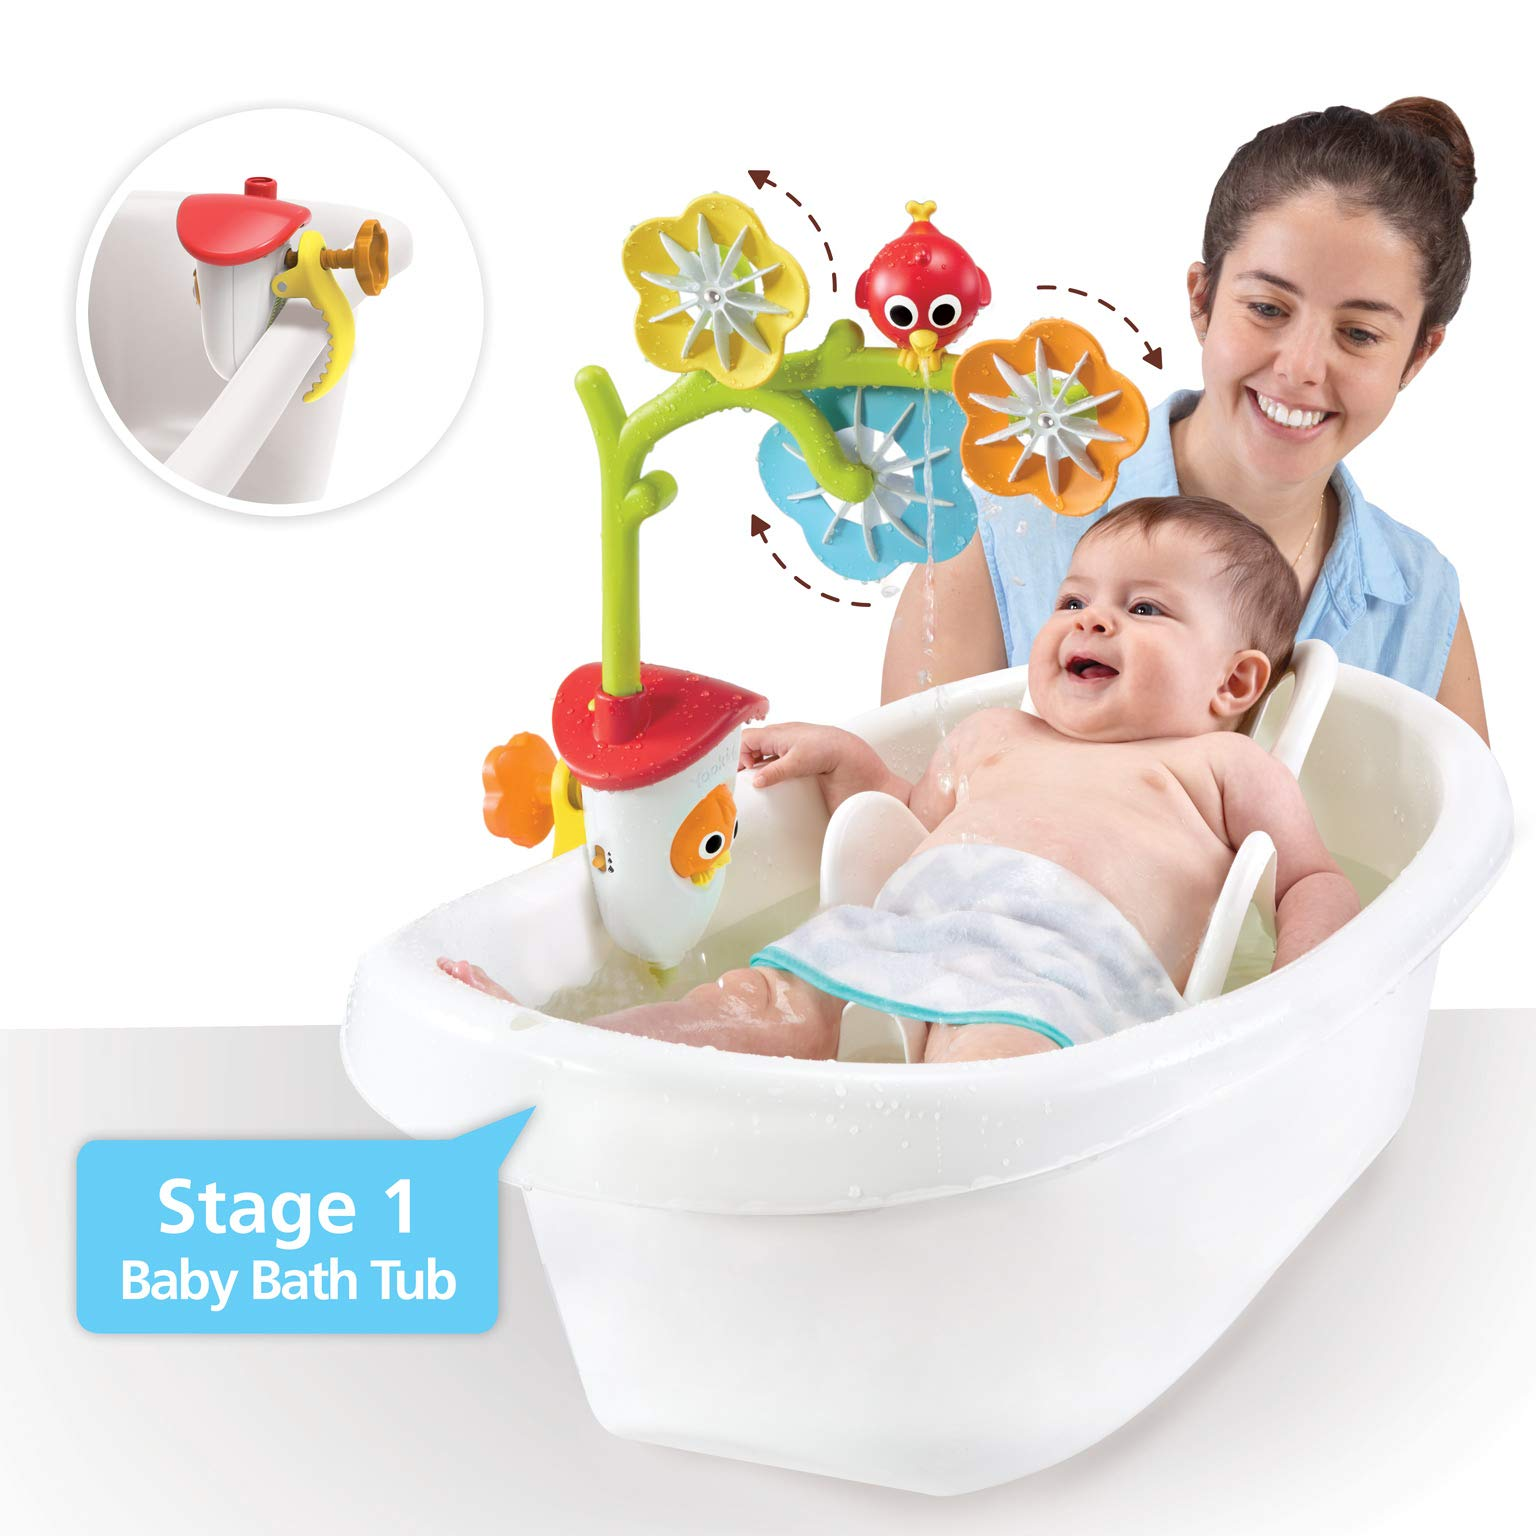 Yookidoo Baby Bath Mobile - Spinning Flowers and Swiveling Fountain for Newborn and Toddler Bath Time Sensory Development - Attaches to Any Size Tub Wall - 0-2 yrs by Yookidoo